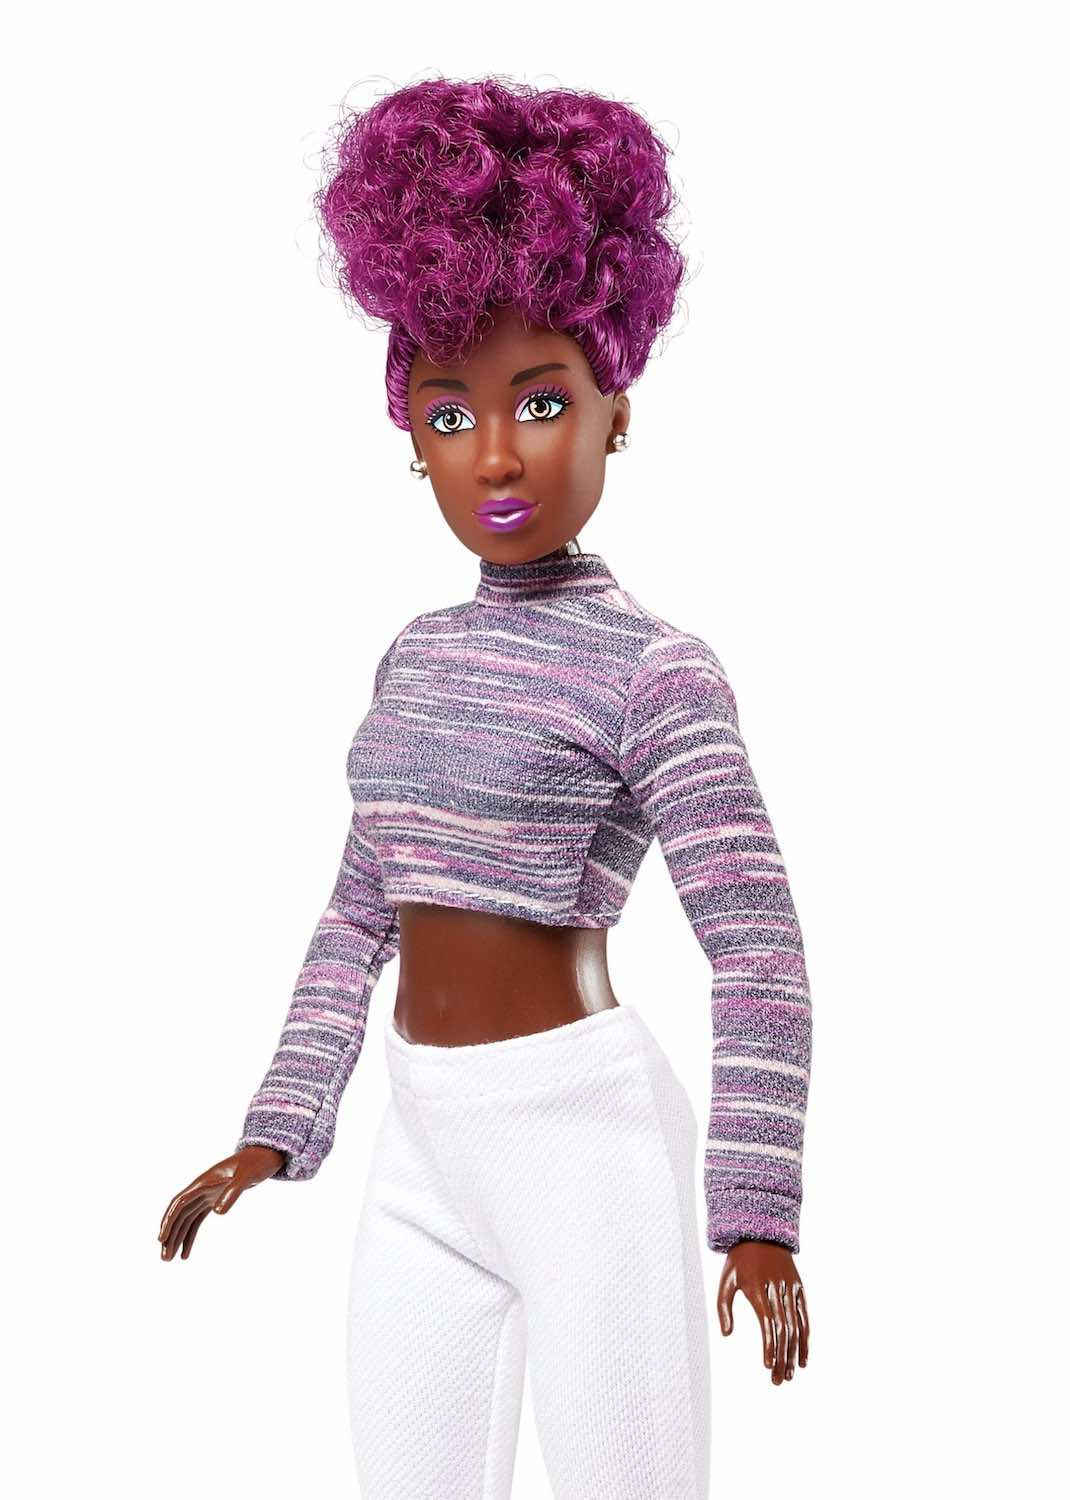 Purple Hair Doll LYNETTE Vivid Fashion Doll - The Fresh Dolls™